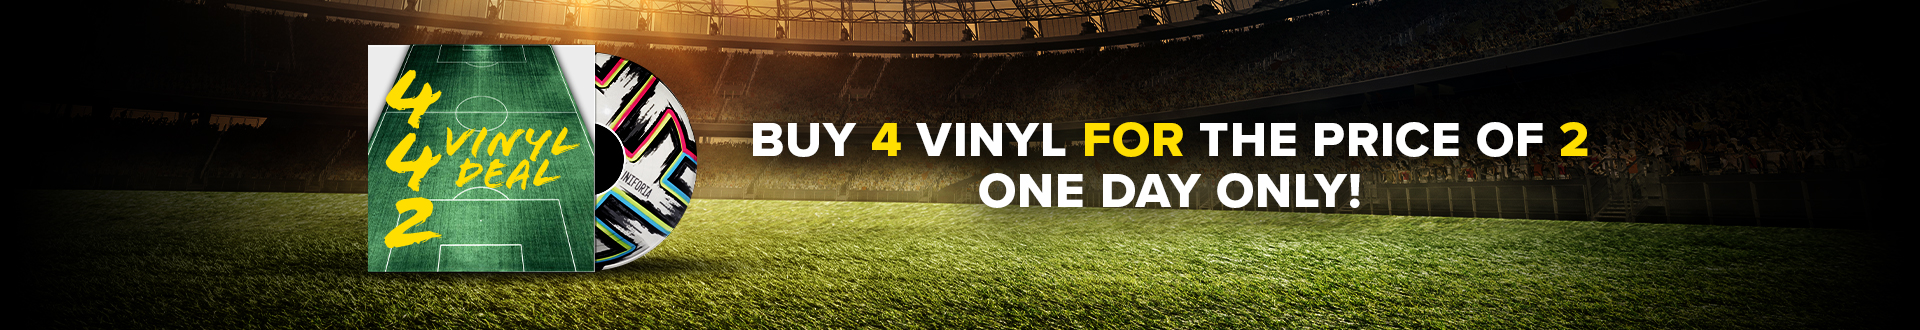 Buy 4 vinyl for the price of 2! Offer ends midnight 11th June